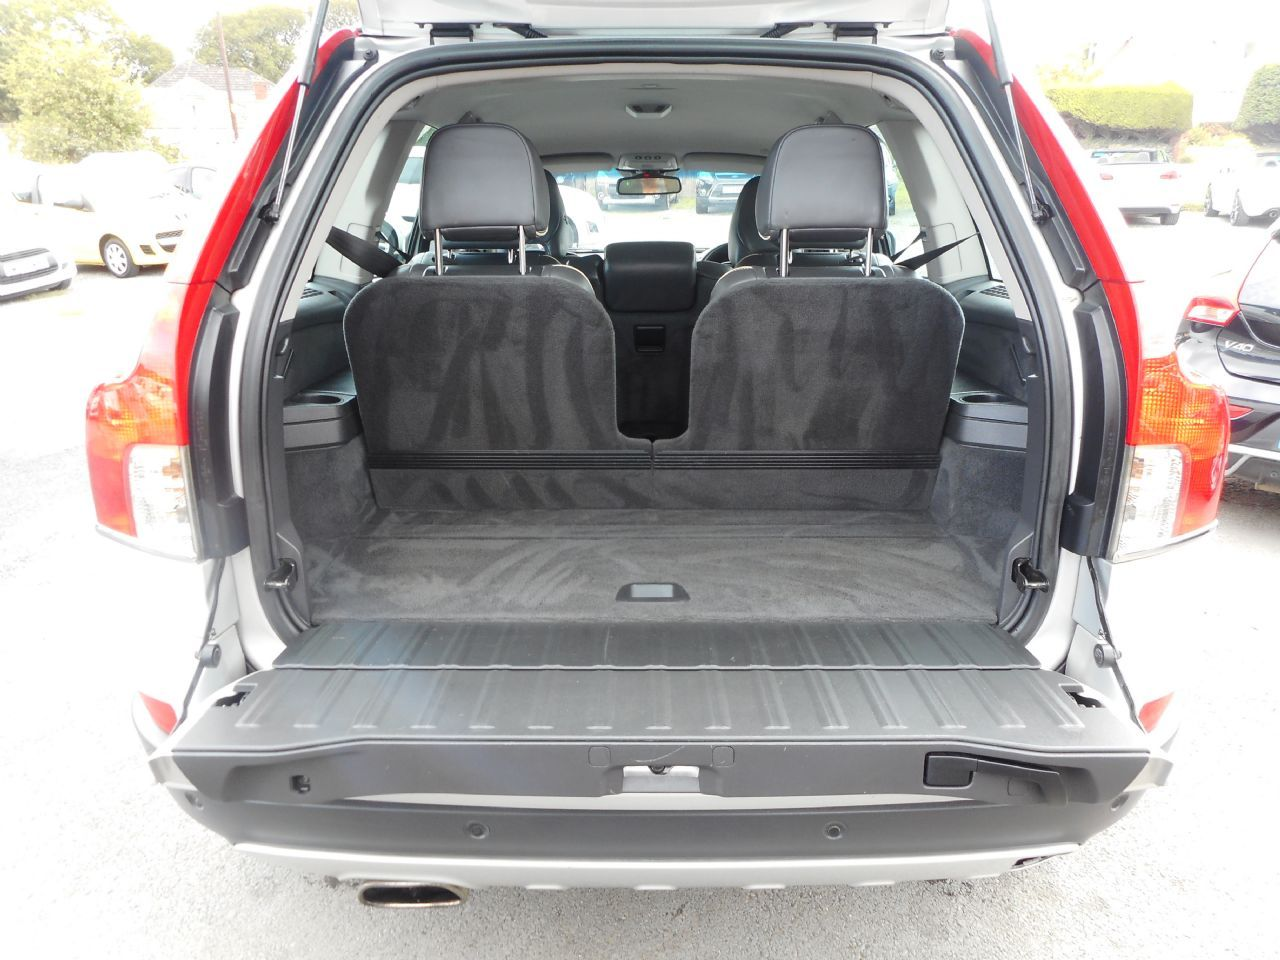 VOLVO XC90 D5 AWD (200 bhp) SE Lux Geartronic (2011) - Picture 15